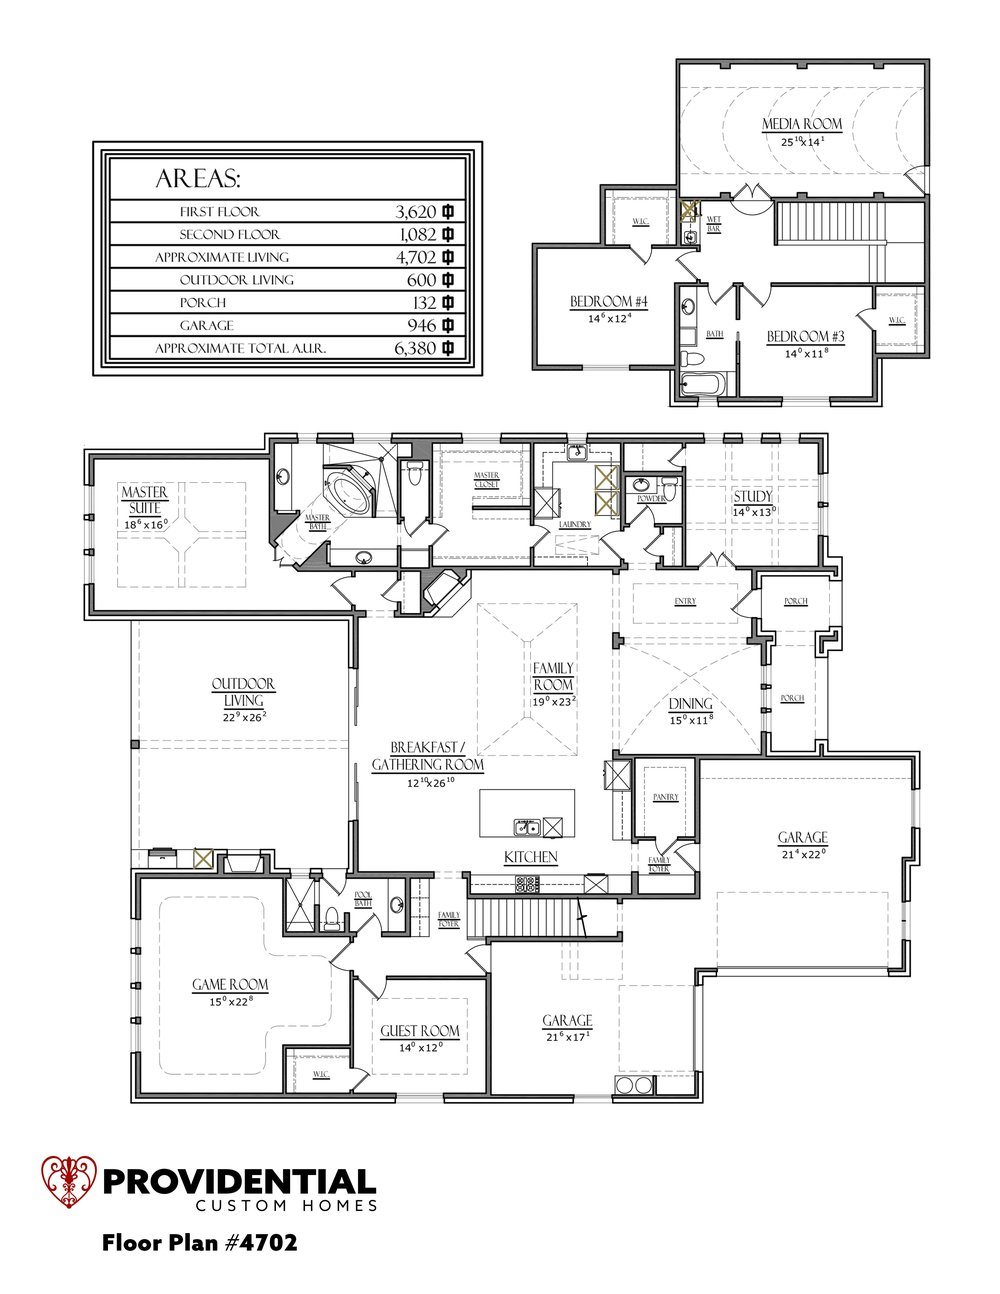 The FLOOR PLAN #4702.jpg